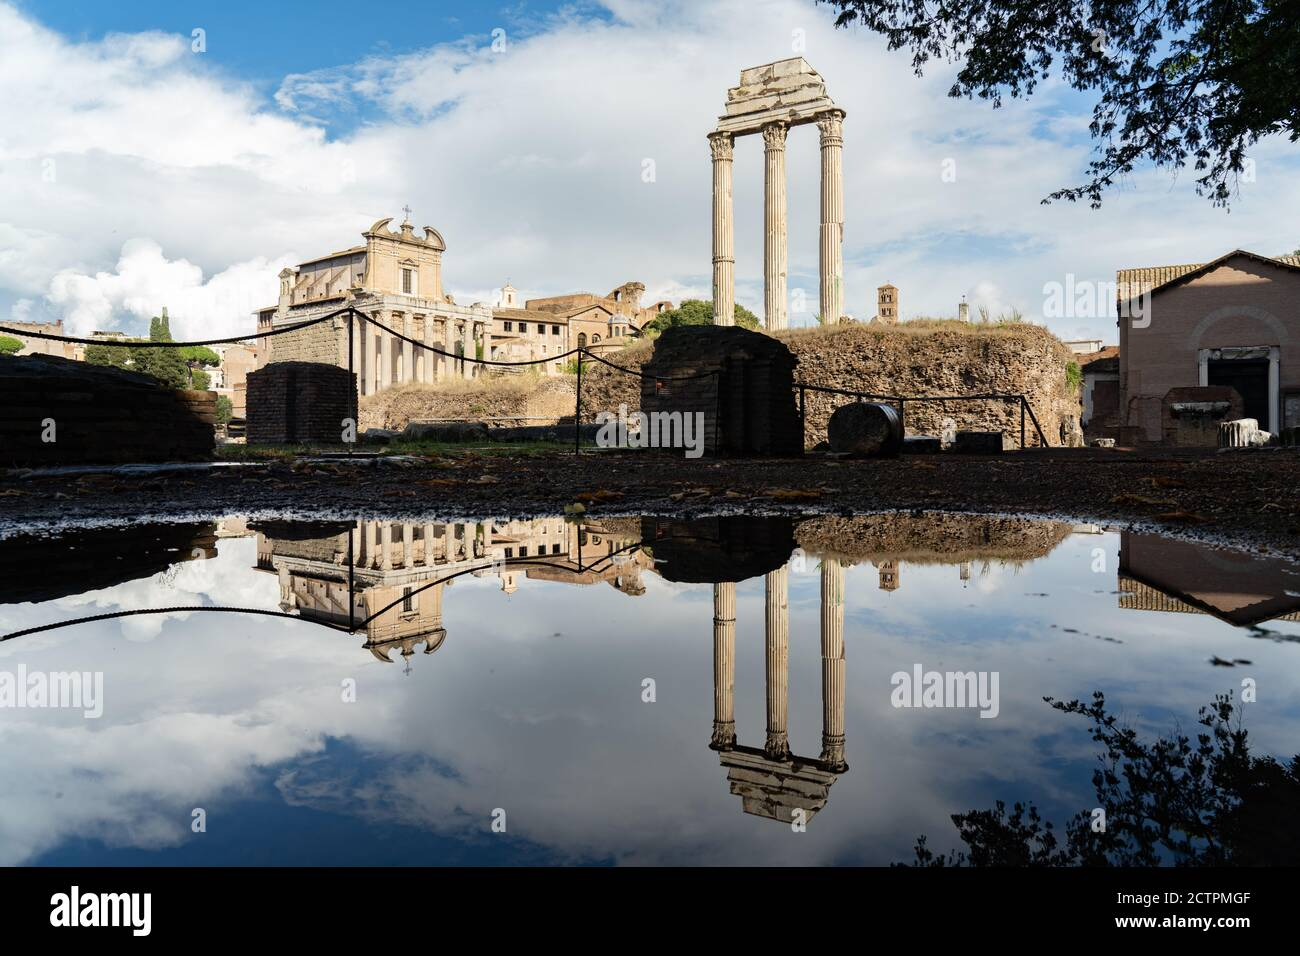 Rome, Italy. 24th September, 2020. Italy Weather: Rome, Italy. 24th September, 2020. Italy Weather: Reflections in puddles after heavy rain in the Forum in Rome, Italy. Photo: Roger Garfield/Alamy Live News Stock Photo